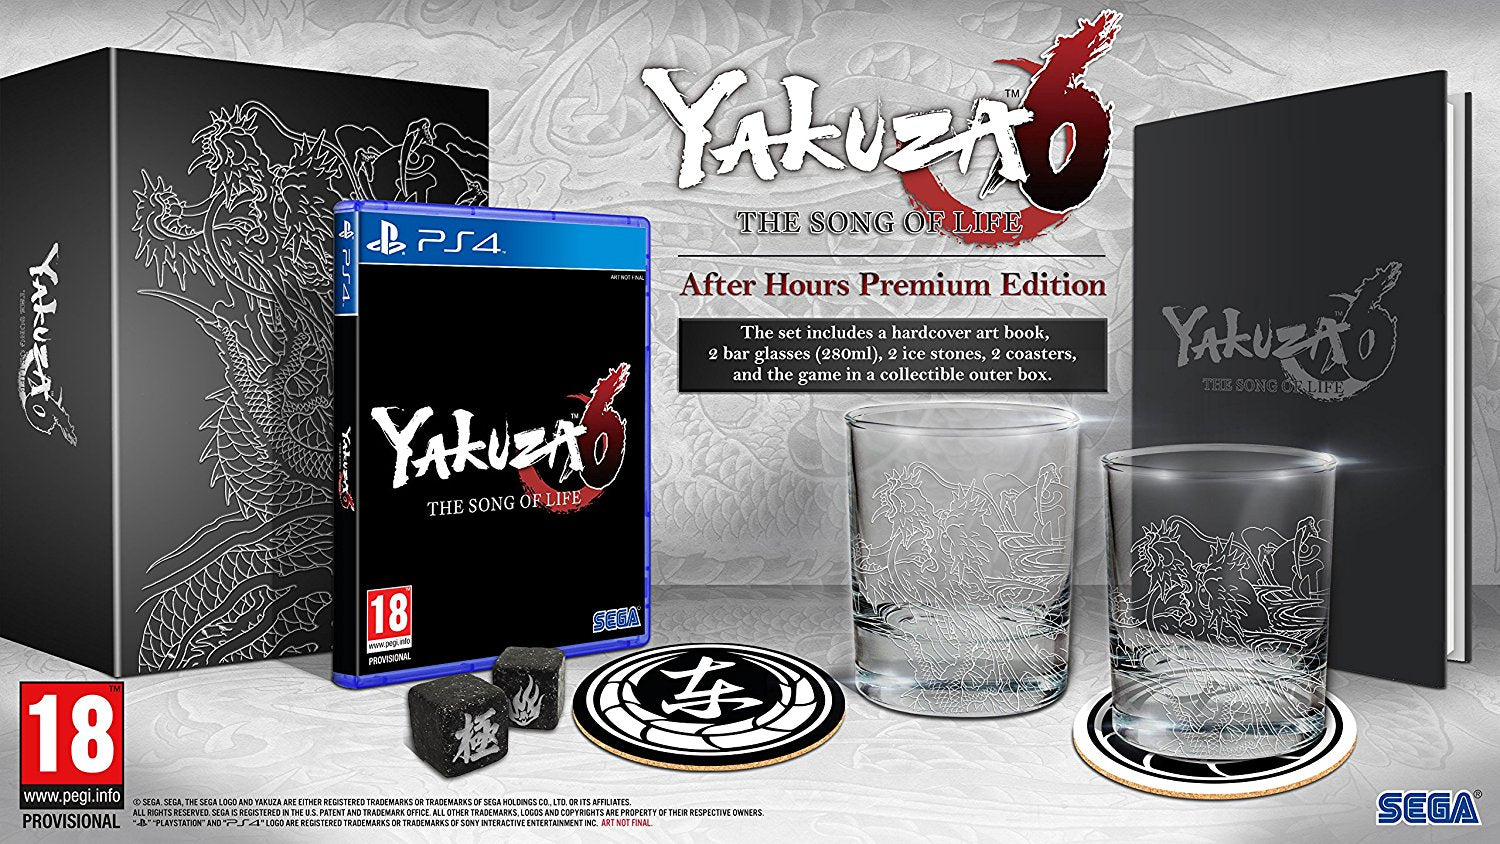 Yakuza 6 The Song of Life - After Hours Premium Edition - PS4